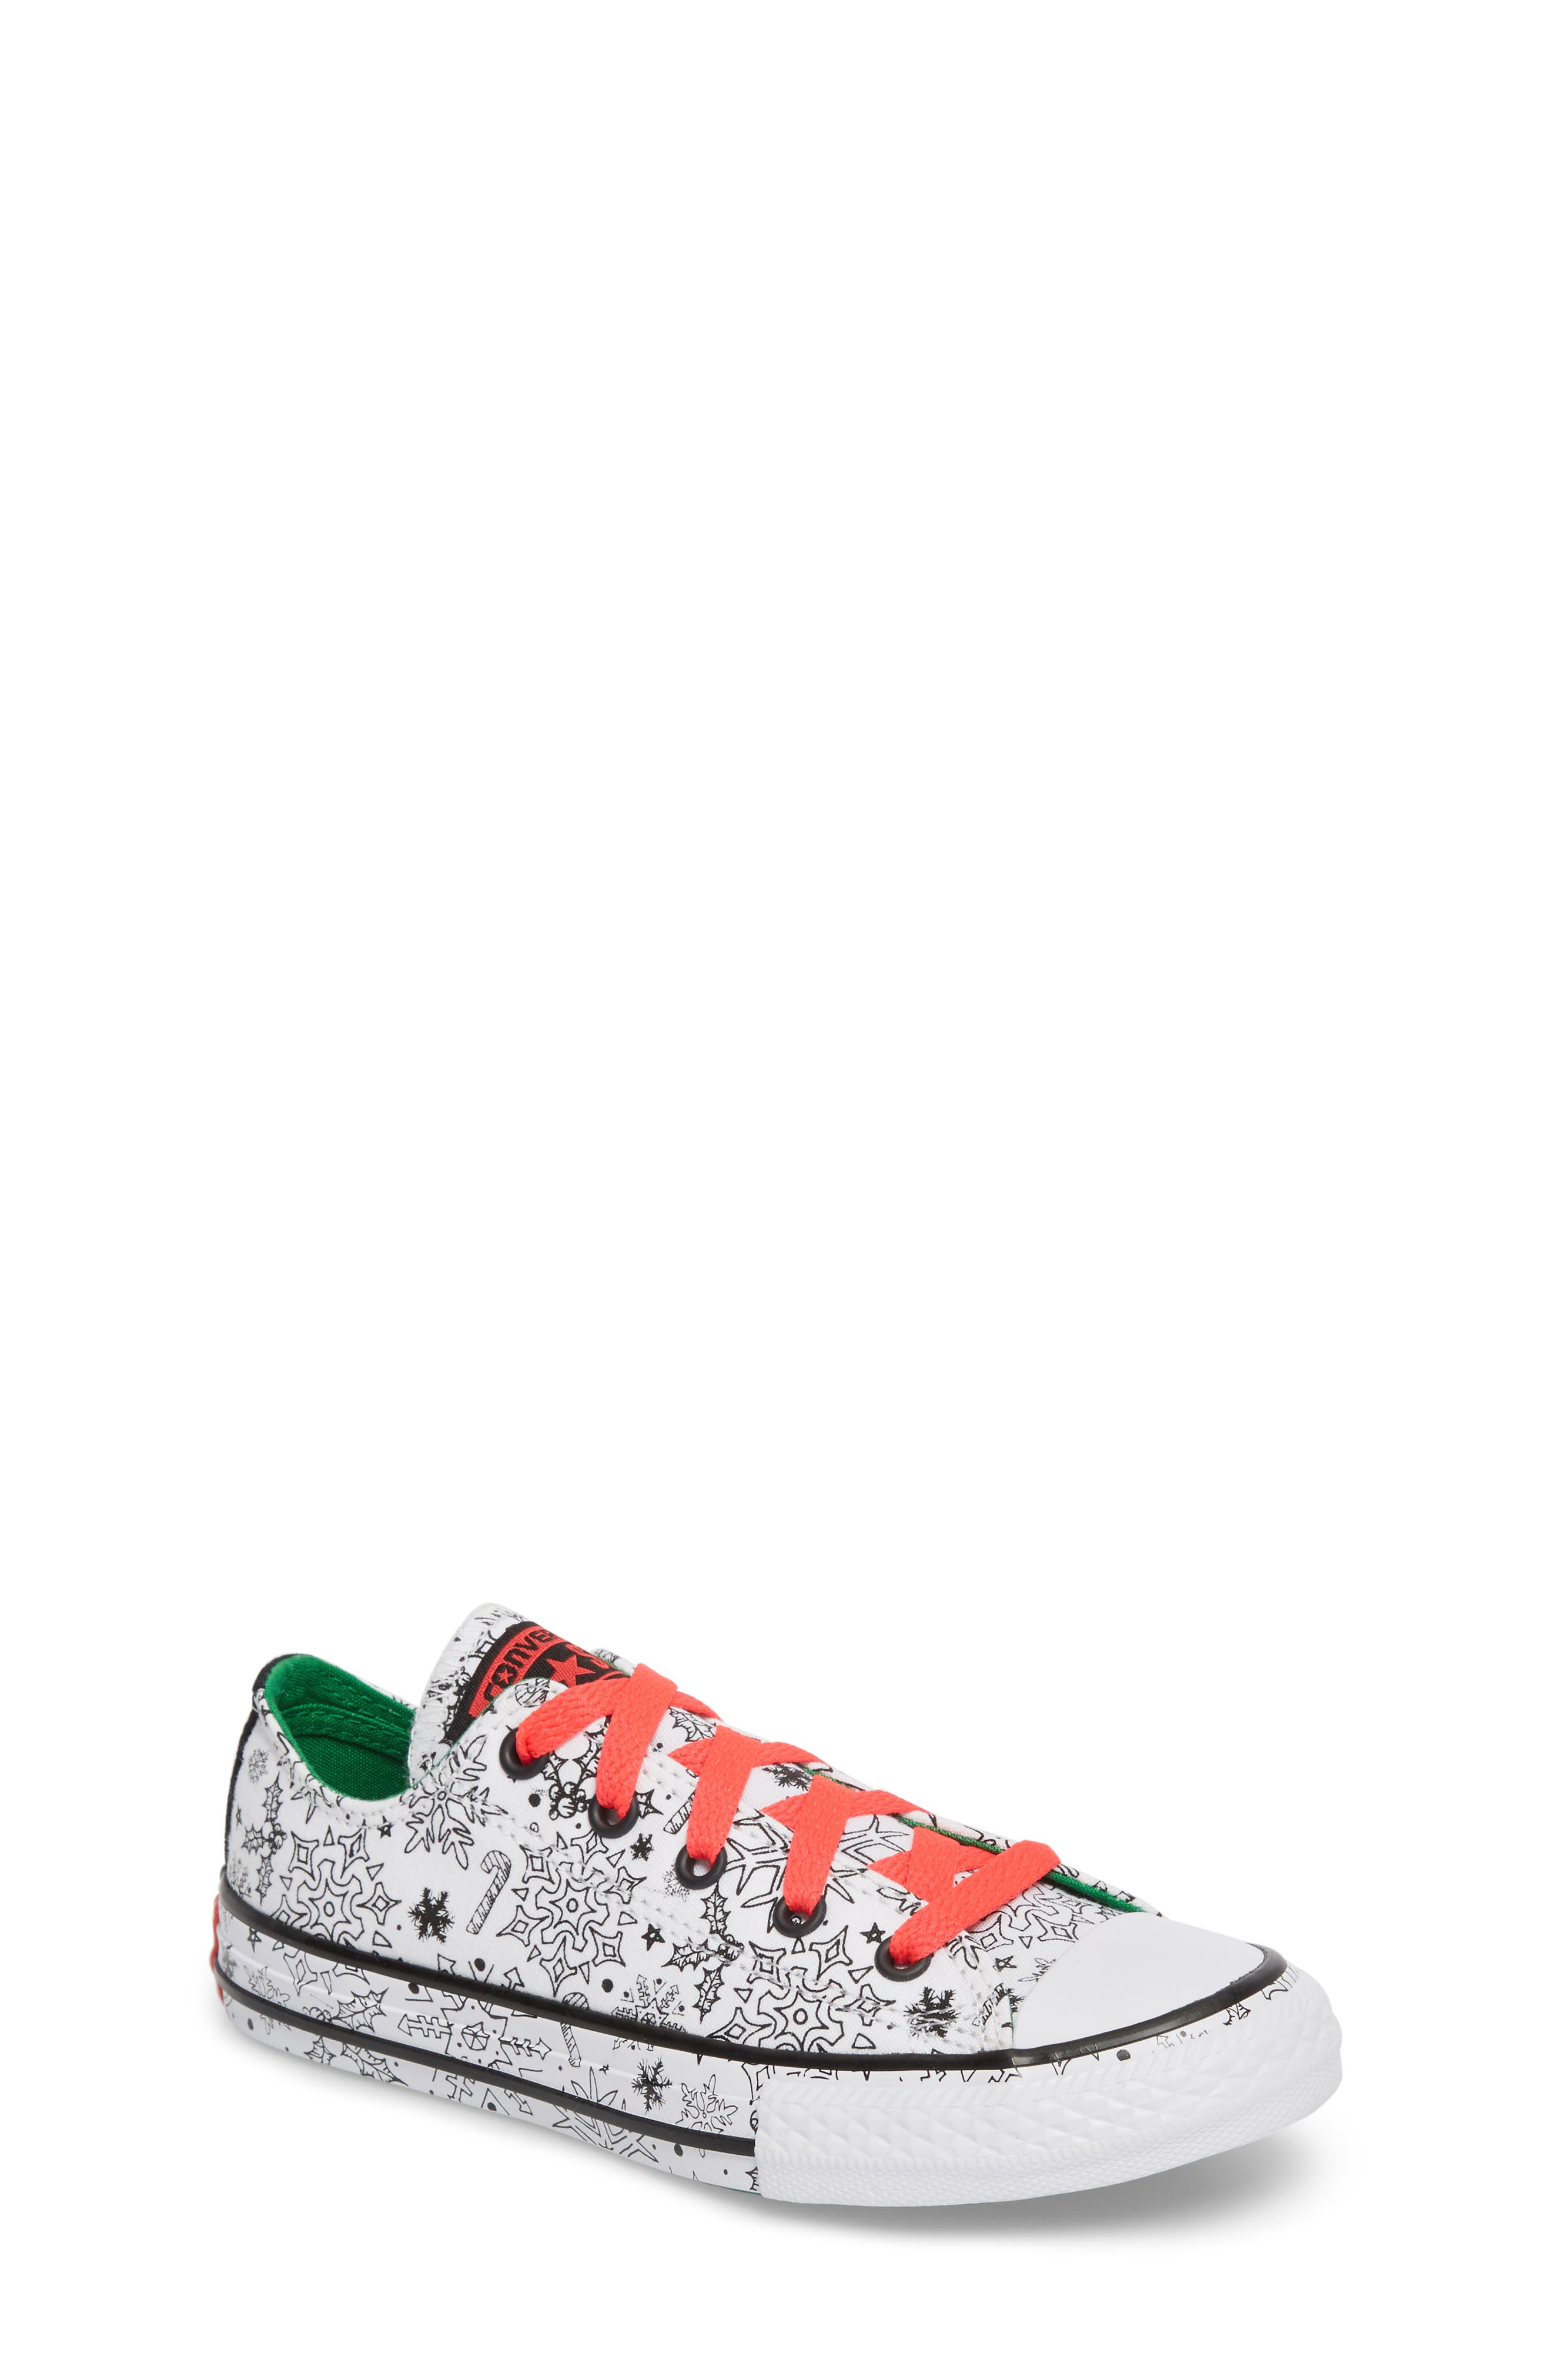 Alternate Image 1 Selected - Converse Chuck Taylor® All Star® Christmas Coloring Book Ox Sneaker (Toddler, Little Kid & Big Kid)